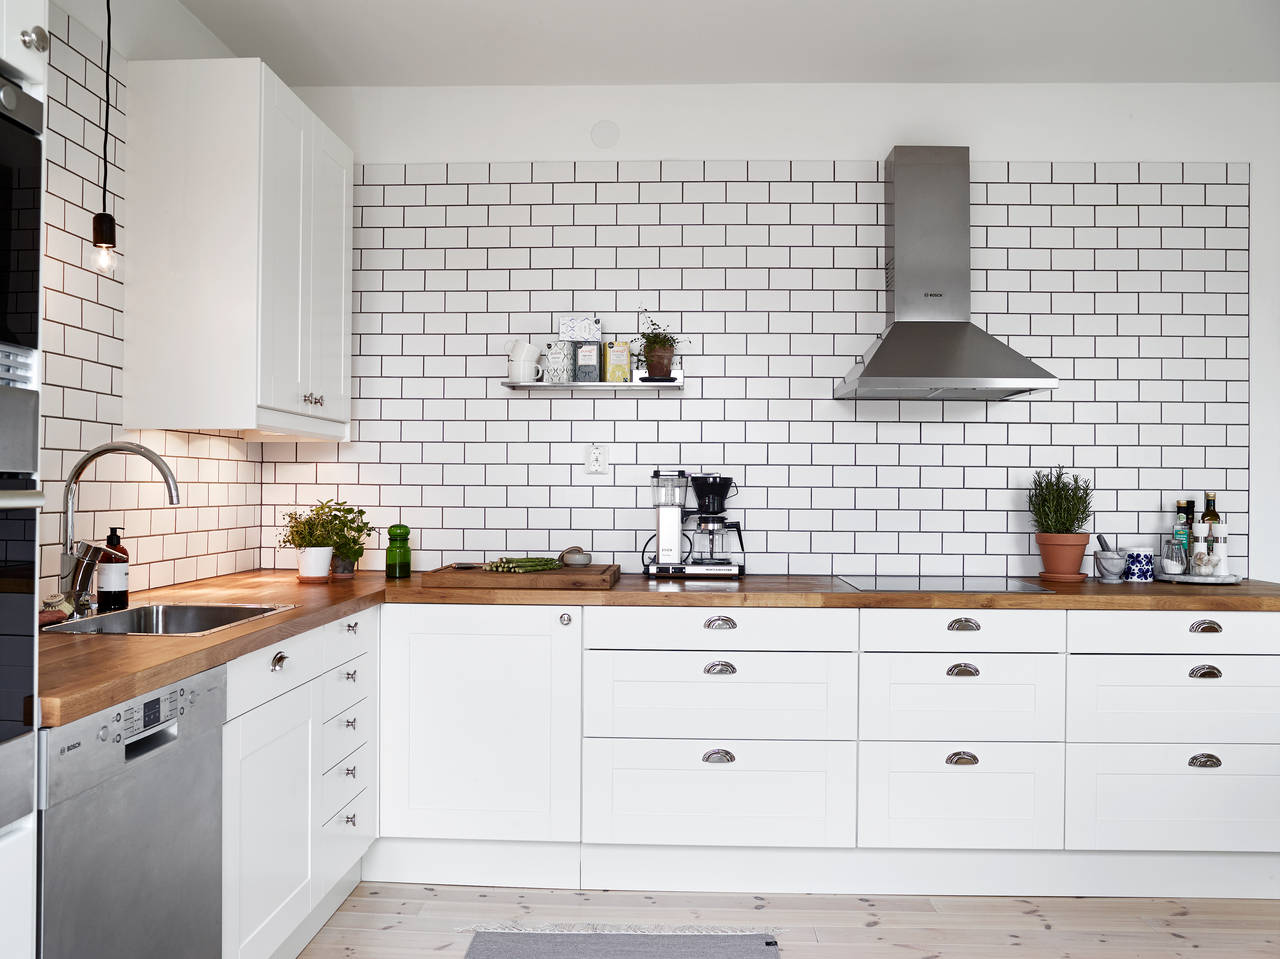 A white tiles, black grout kind of kitchen - COCO LAPINE ...